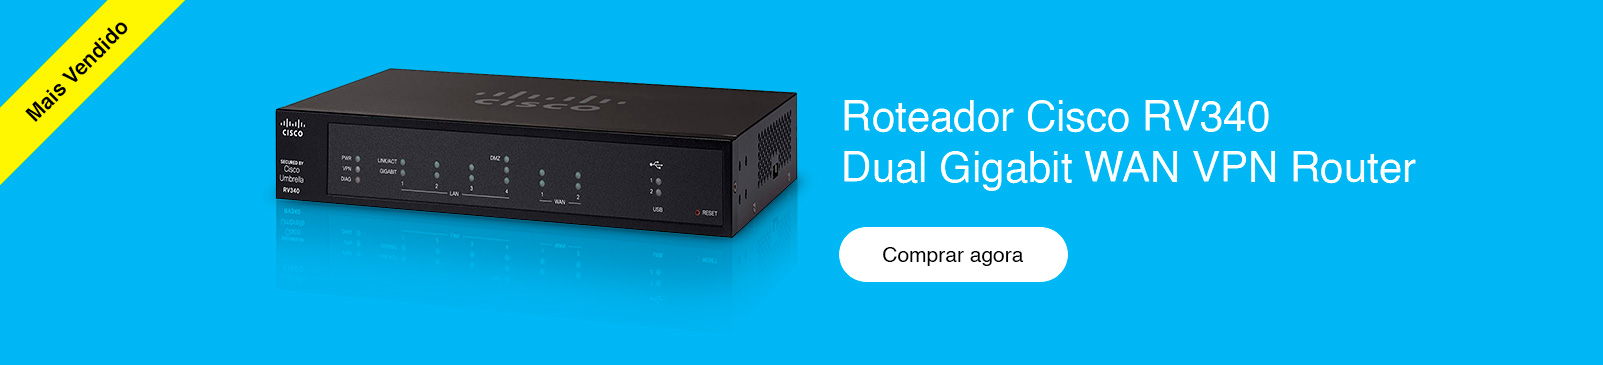 Roteador Cisco RV340